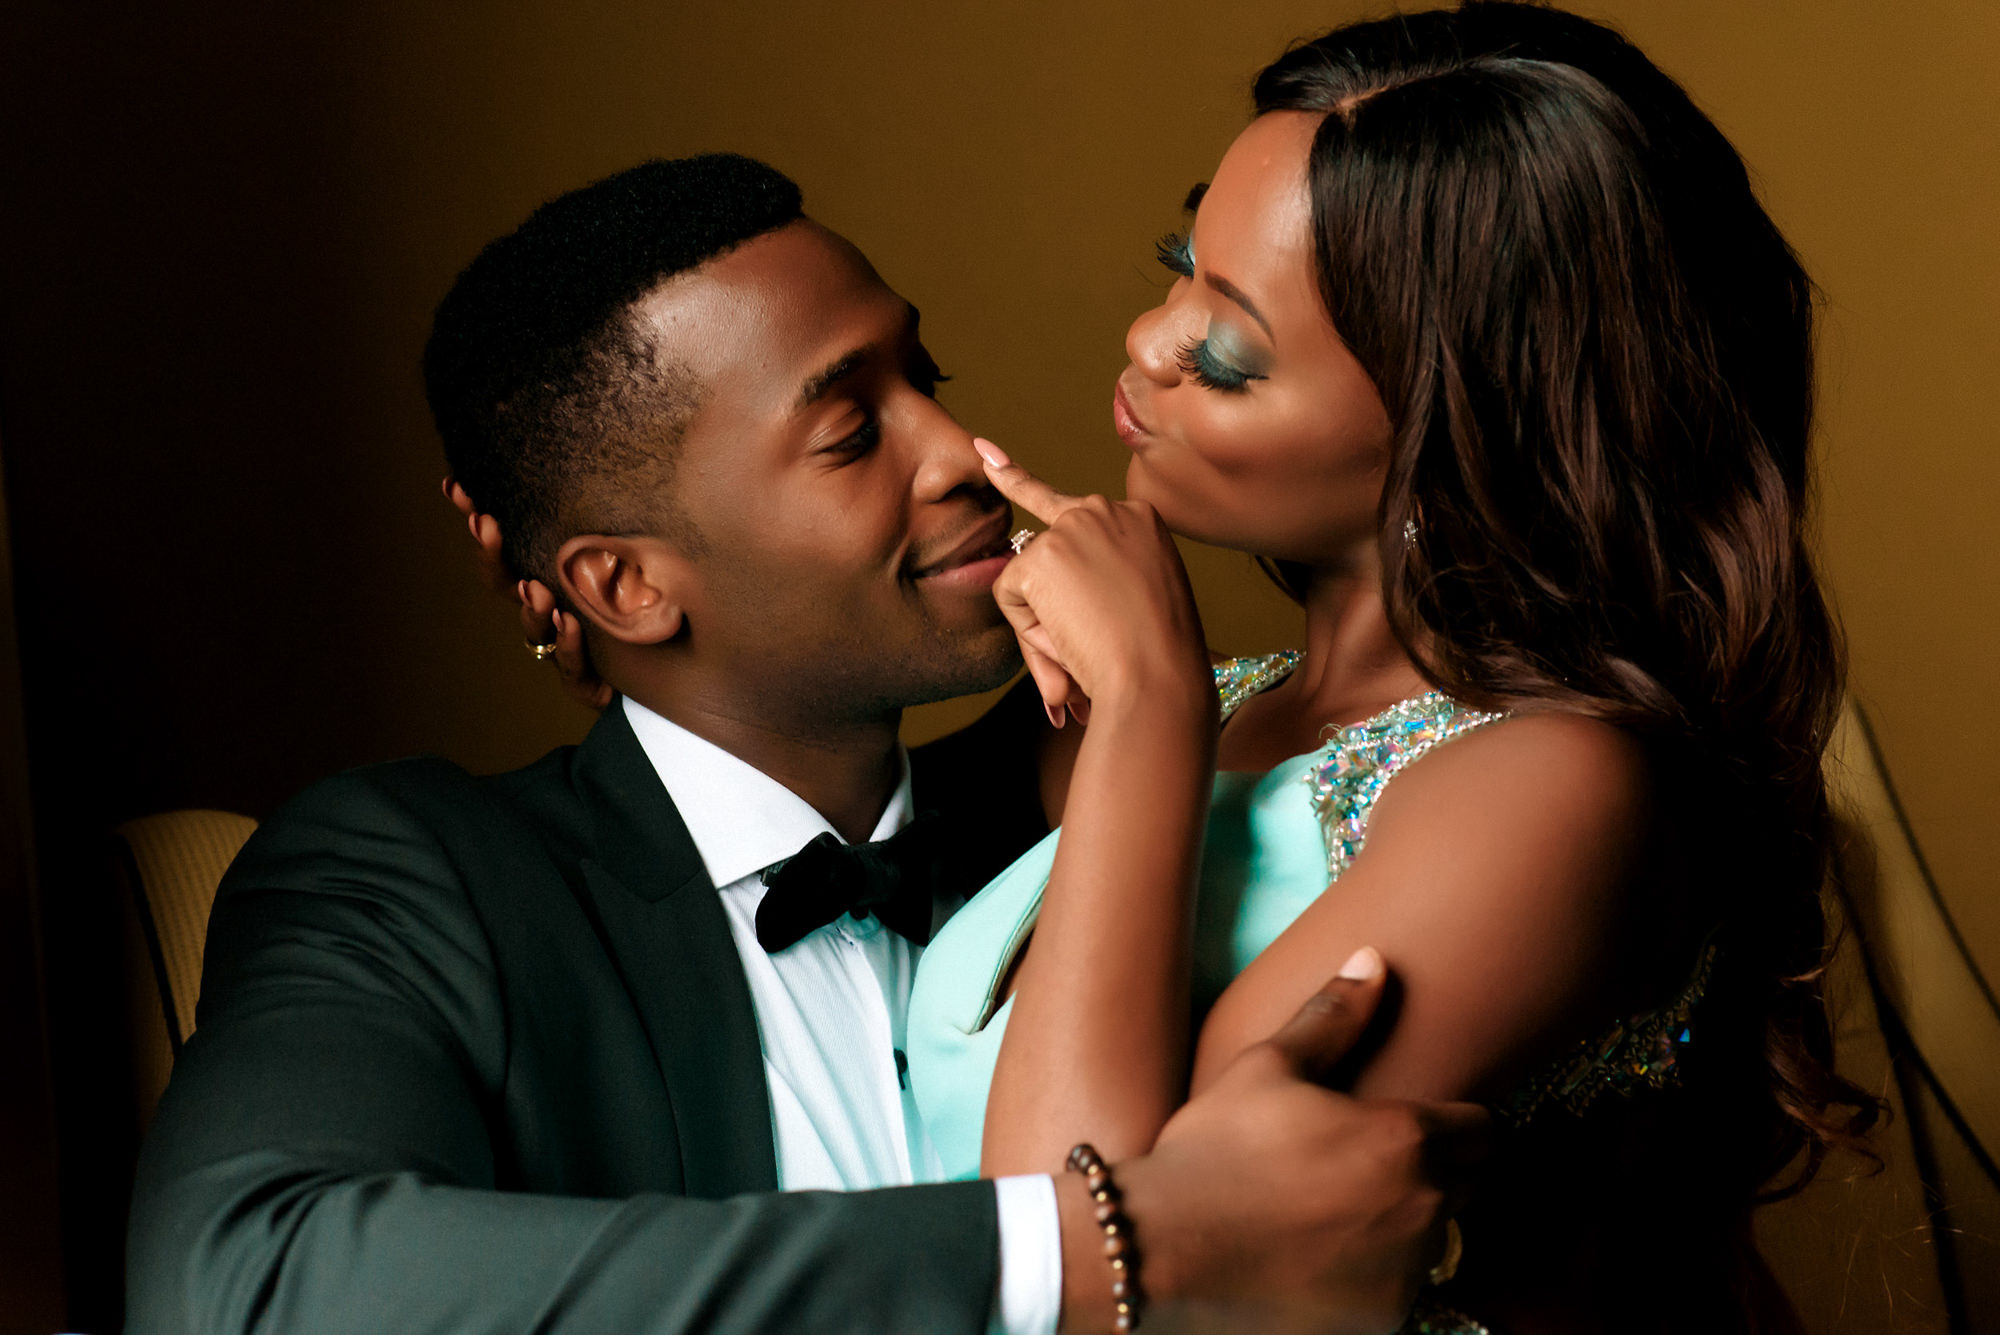 elegant-black-couple-bride-with-aqua-beaded-sheath-worlds-best-wedding-photos-jide-alakija-new-york-wedding-photographers